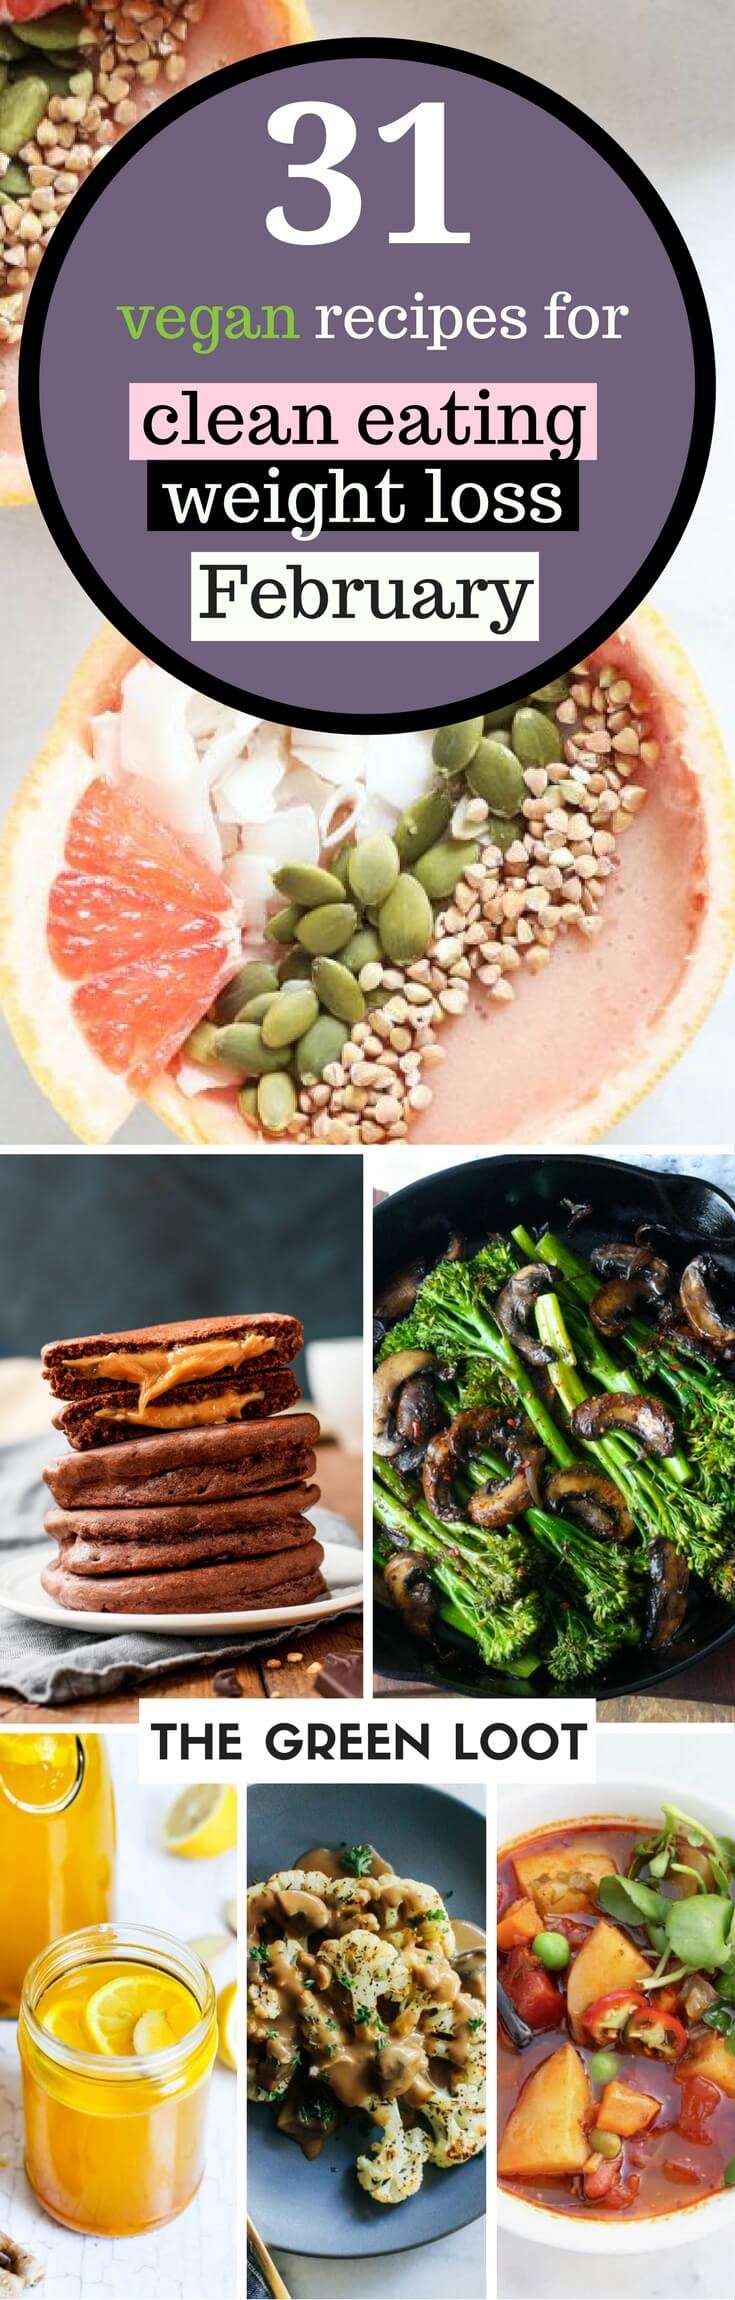 Healthy Vegan Breakfast For Weight Loss  31 Vegan Clean Eating Weight Loss Recipes for February